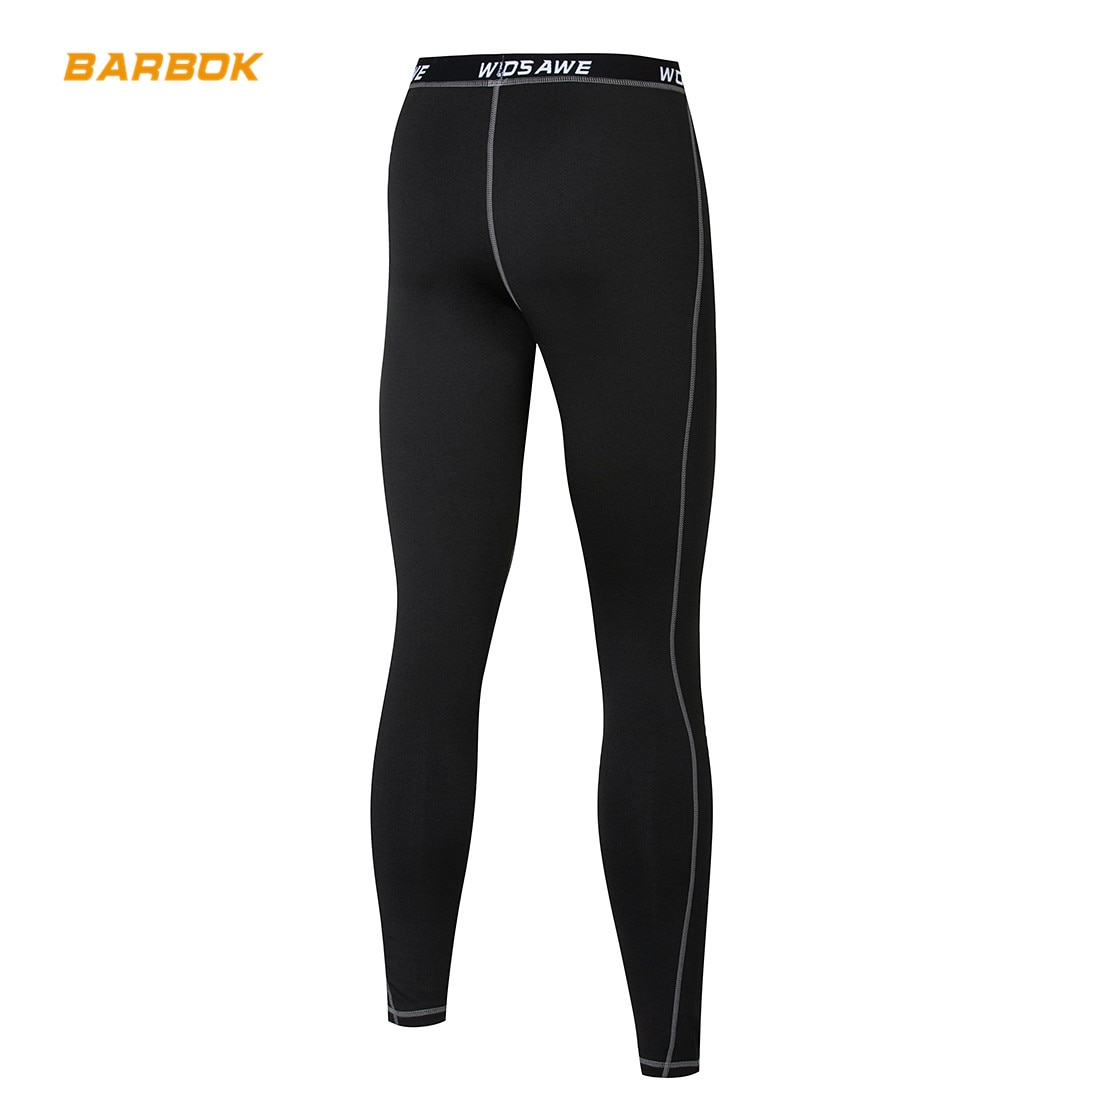 Mens Fleece Thermal Motocross Pants Base Layer Skin Tights Sports Windproof Pants Motorcycle Underwear Long Johns For Winter